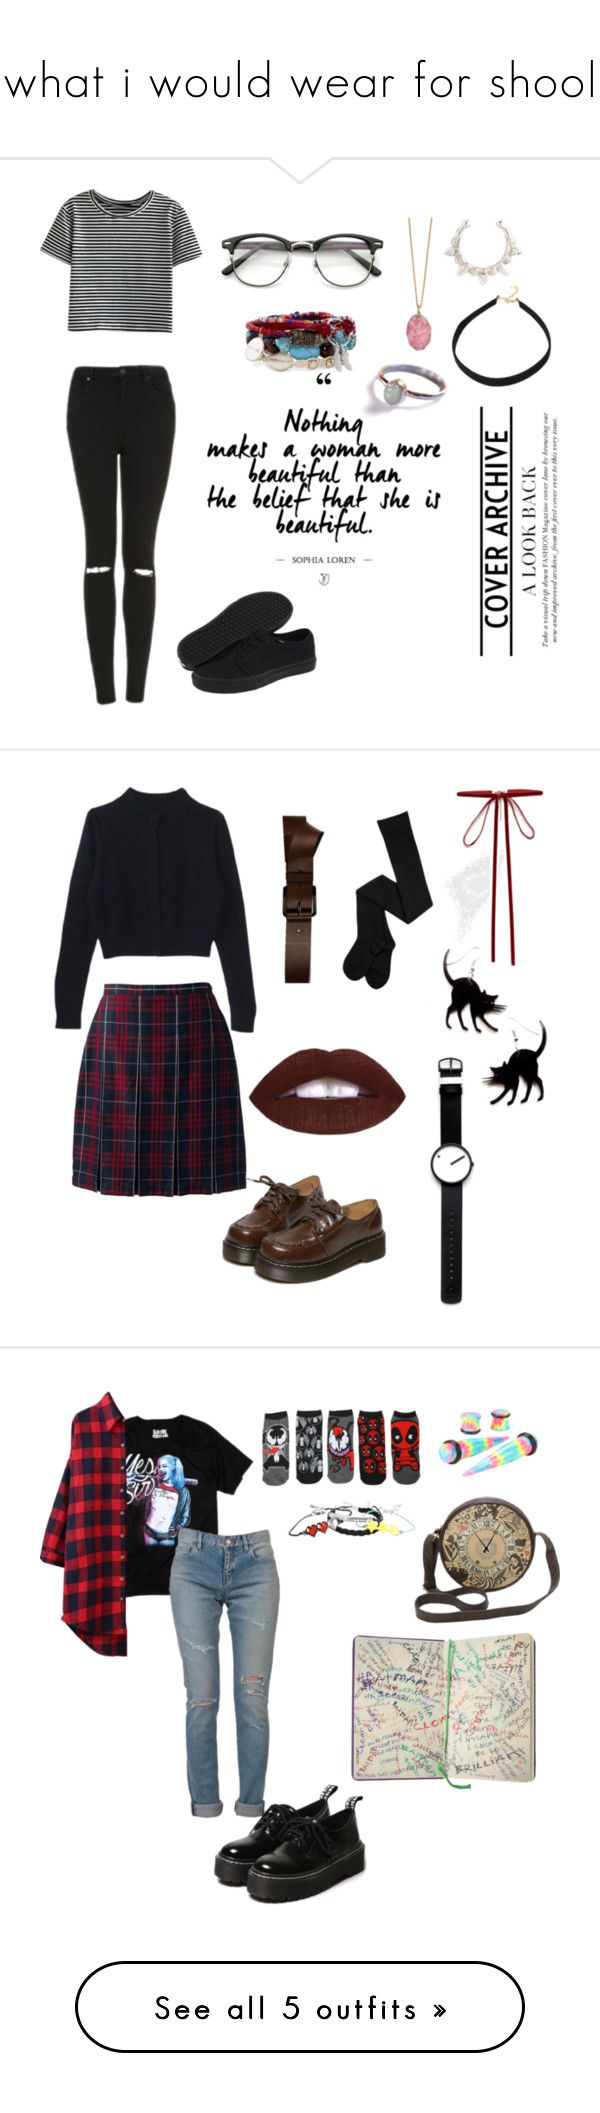 """""""what i would wear for shool"""" by shadae-hernandez ❤ liked on Polyvore featuring Topshop, Helix & Felix, Vans, Pamela Love, Lipsy, Decree, Lands' End, Barbara Bui, WithChic and ASOS"""